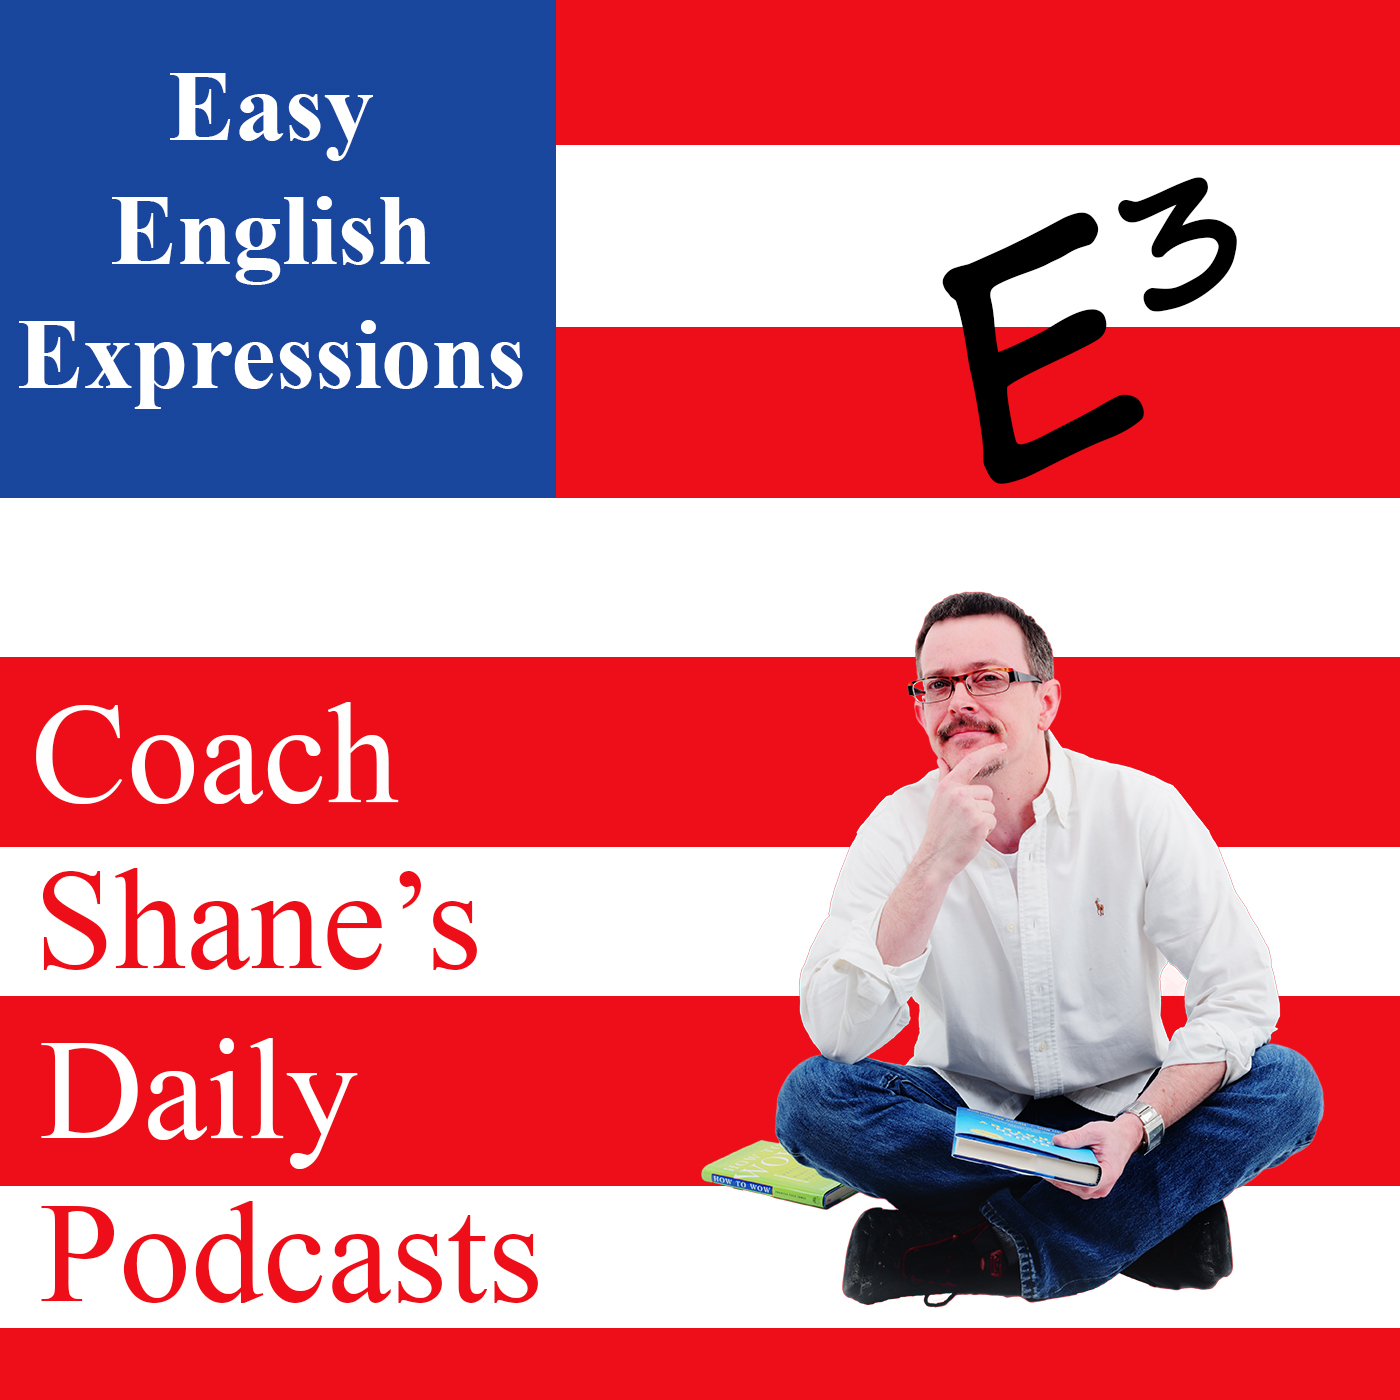 61 Daily Easy English Expression PODCAST—Don't chew with your mouth open!